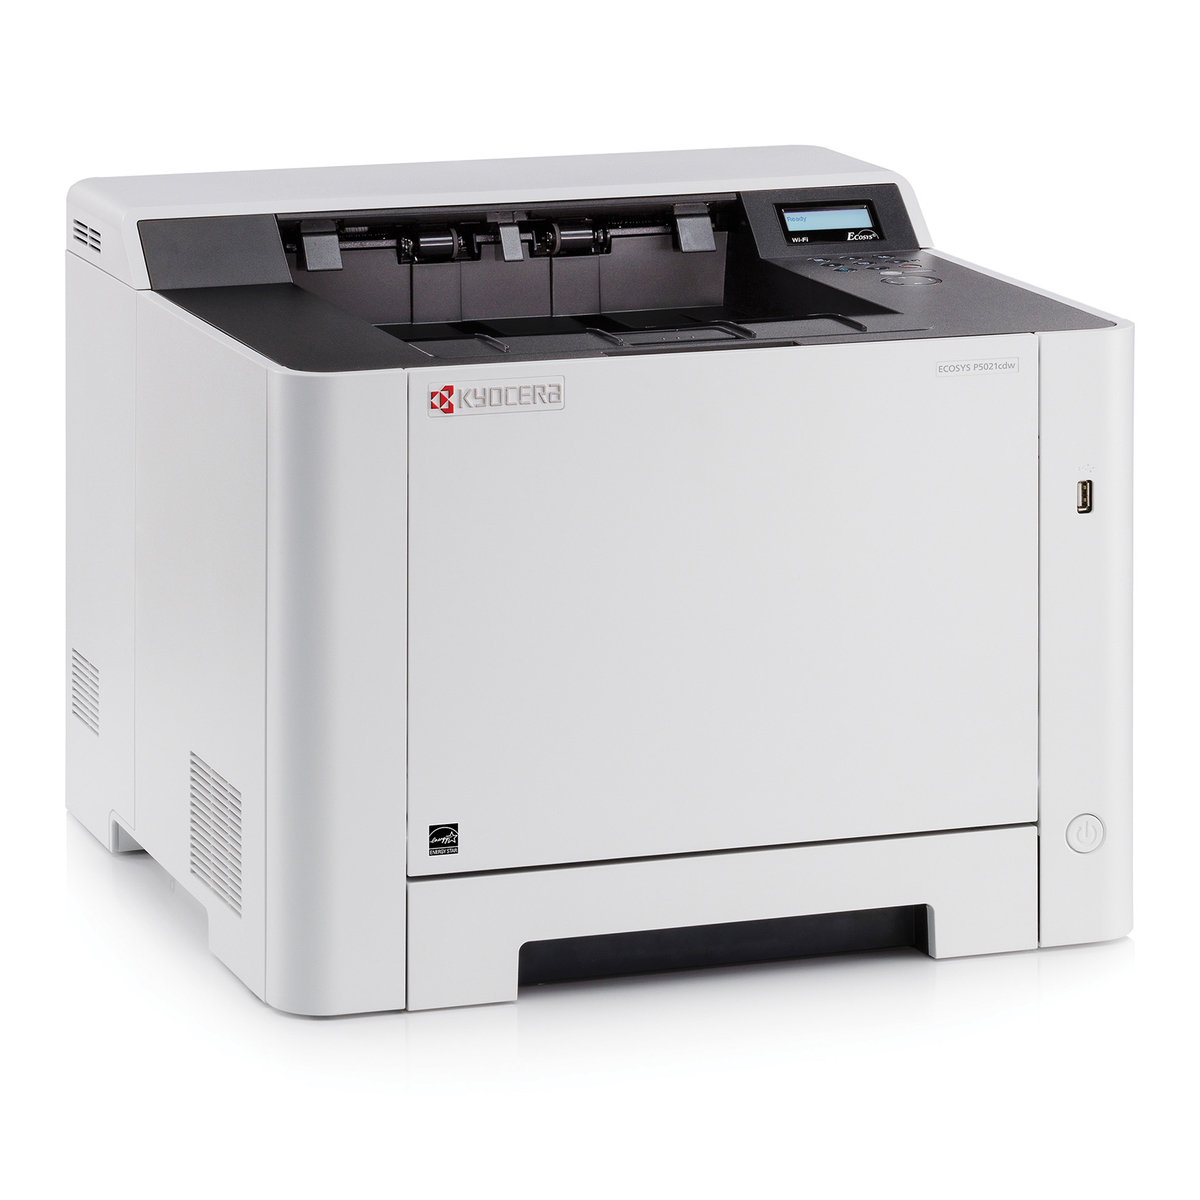 Kyocera Printers:  The Kyocera ECOSYS P5021cdw Printer